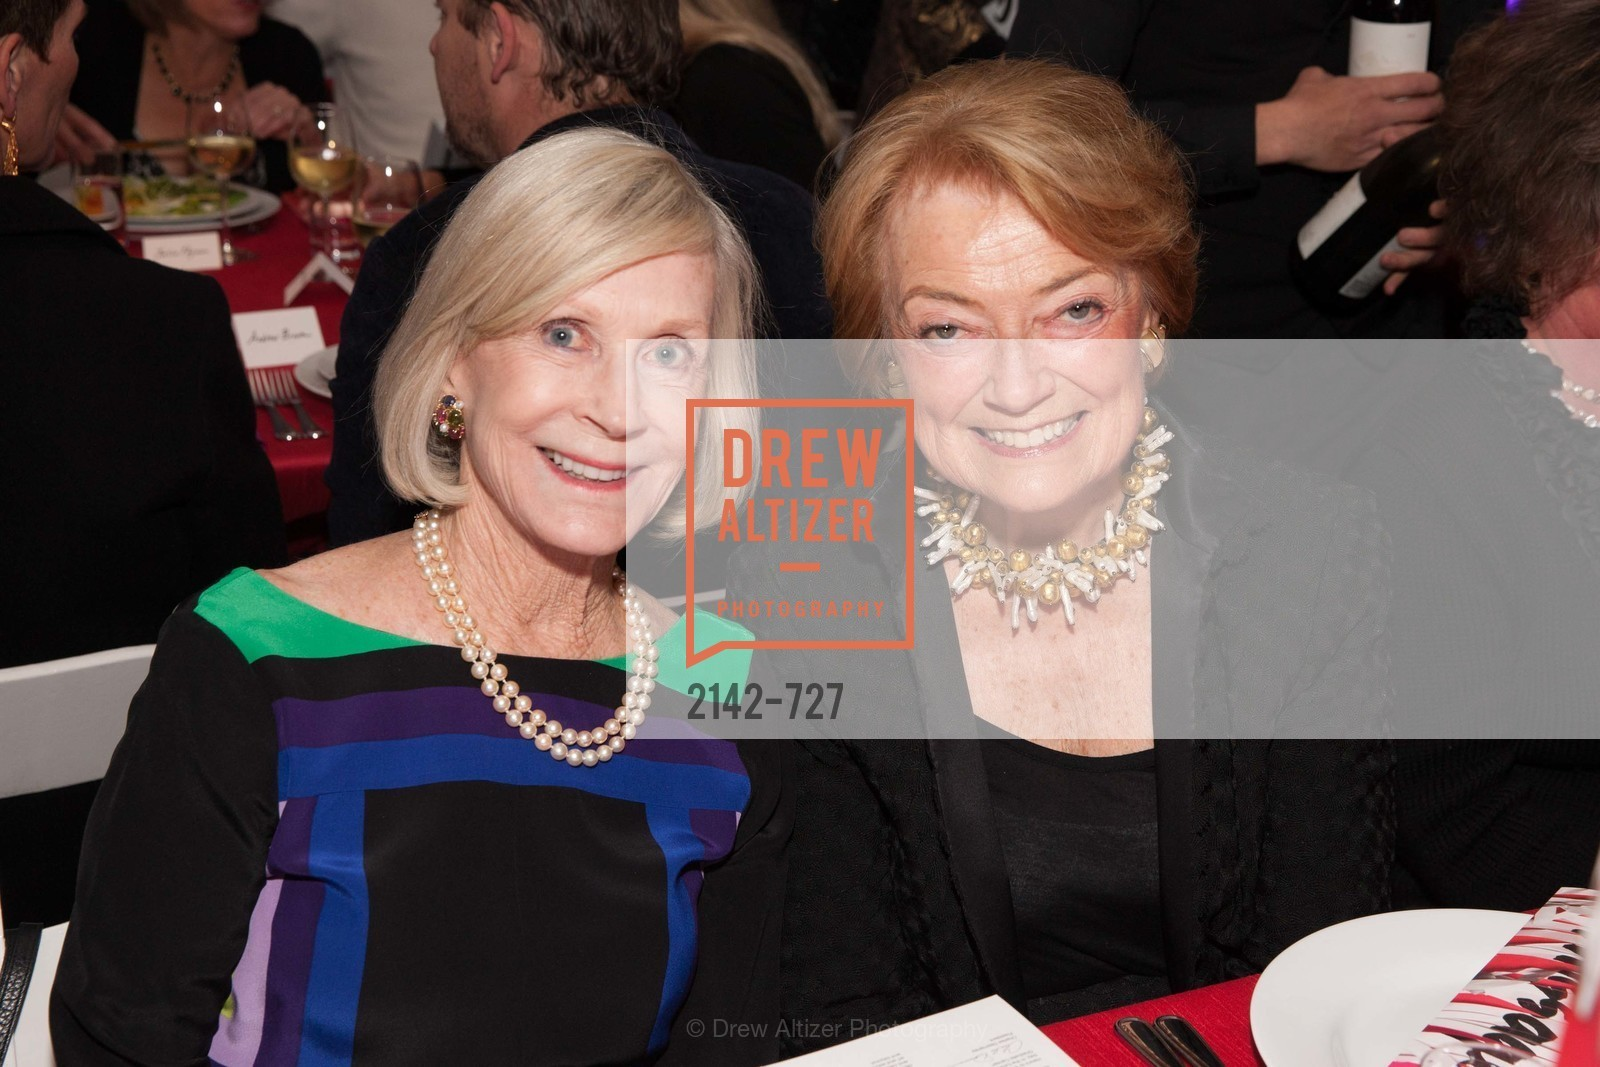 Pepper Jackson, Gretchen De Baubigny, SAN FRANCISCO ART INSTITUTE Gala Honoring Art Visionary and Advocate ROSELYNE CHROMAN SWIG, US, May 14th, 2015,Drew Altizer, Drew Altizer Photography, full-service agency, private events, San Francisco photographer, photographer california